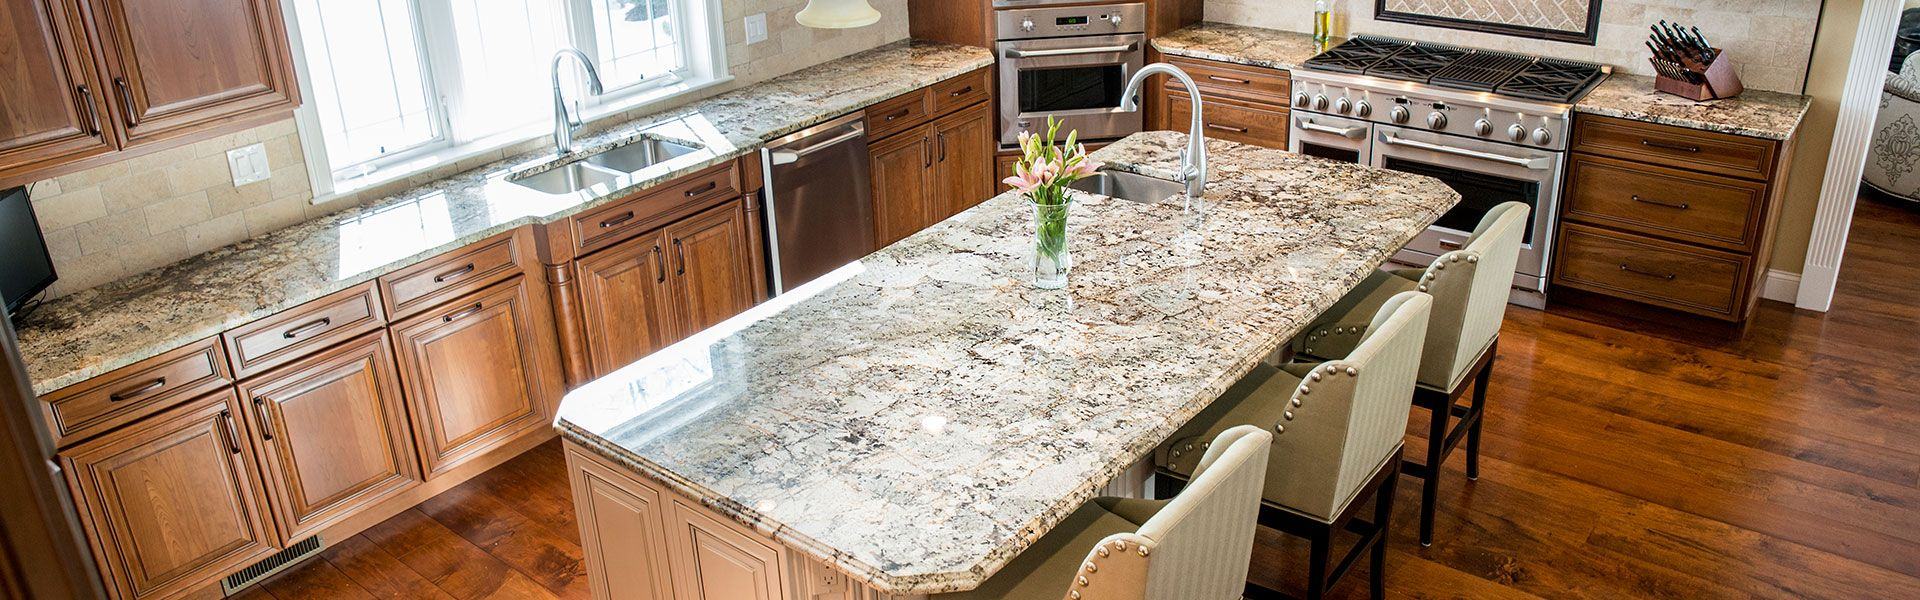 TheGranitePlace-Burlington MA Granite